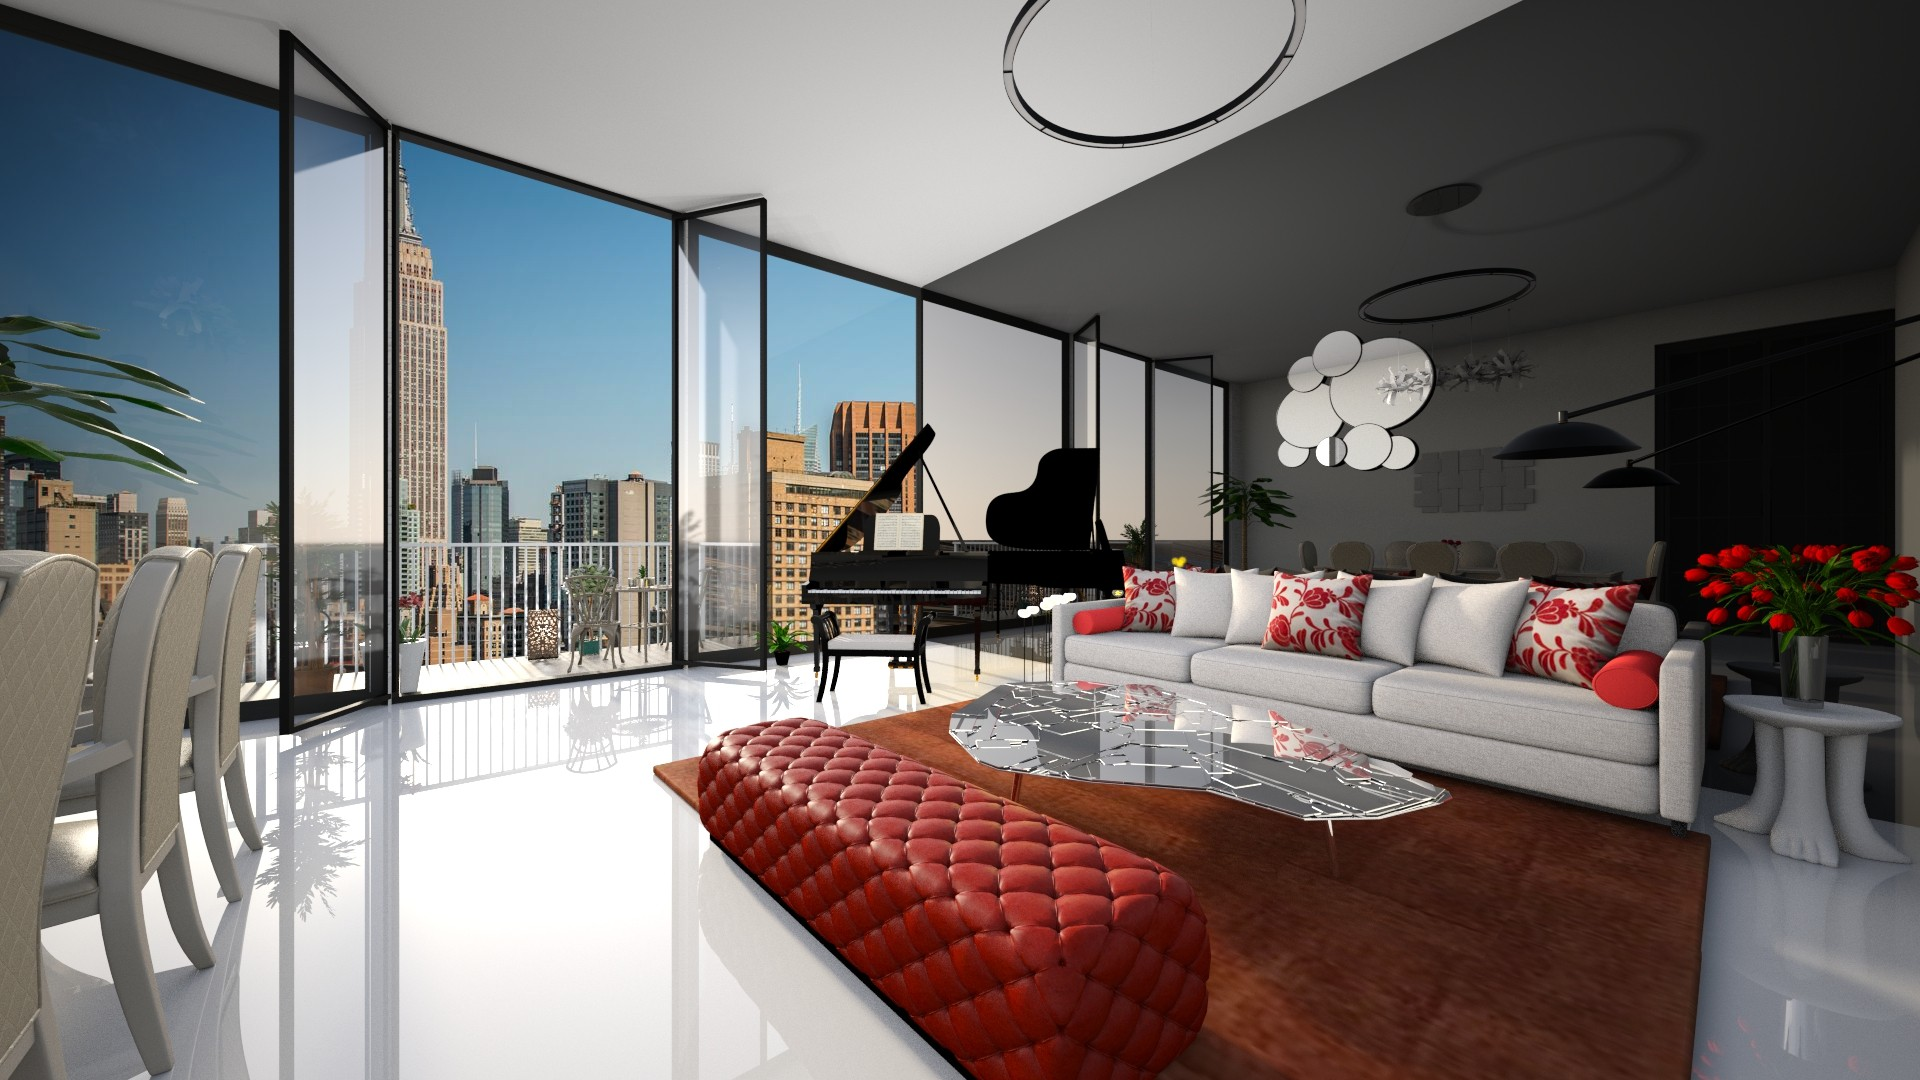 new york pent house - Living room - by harleenbhatia12